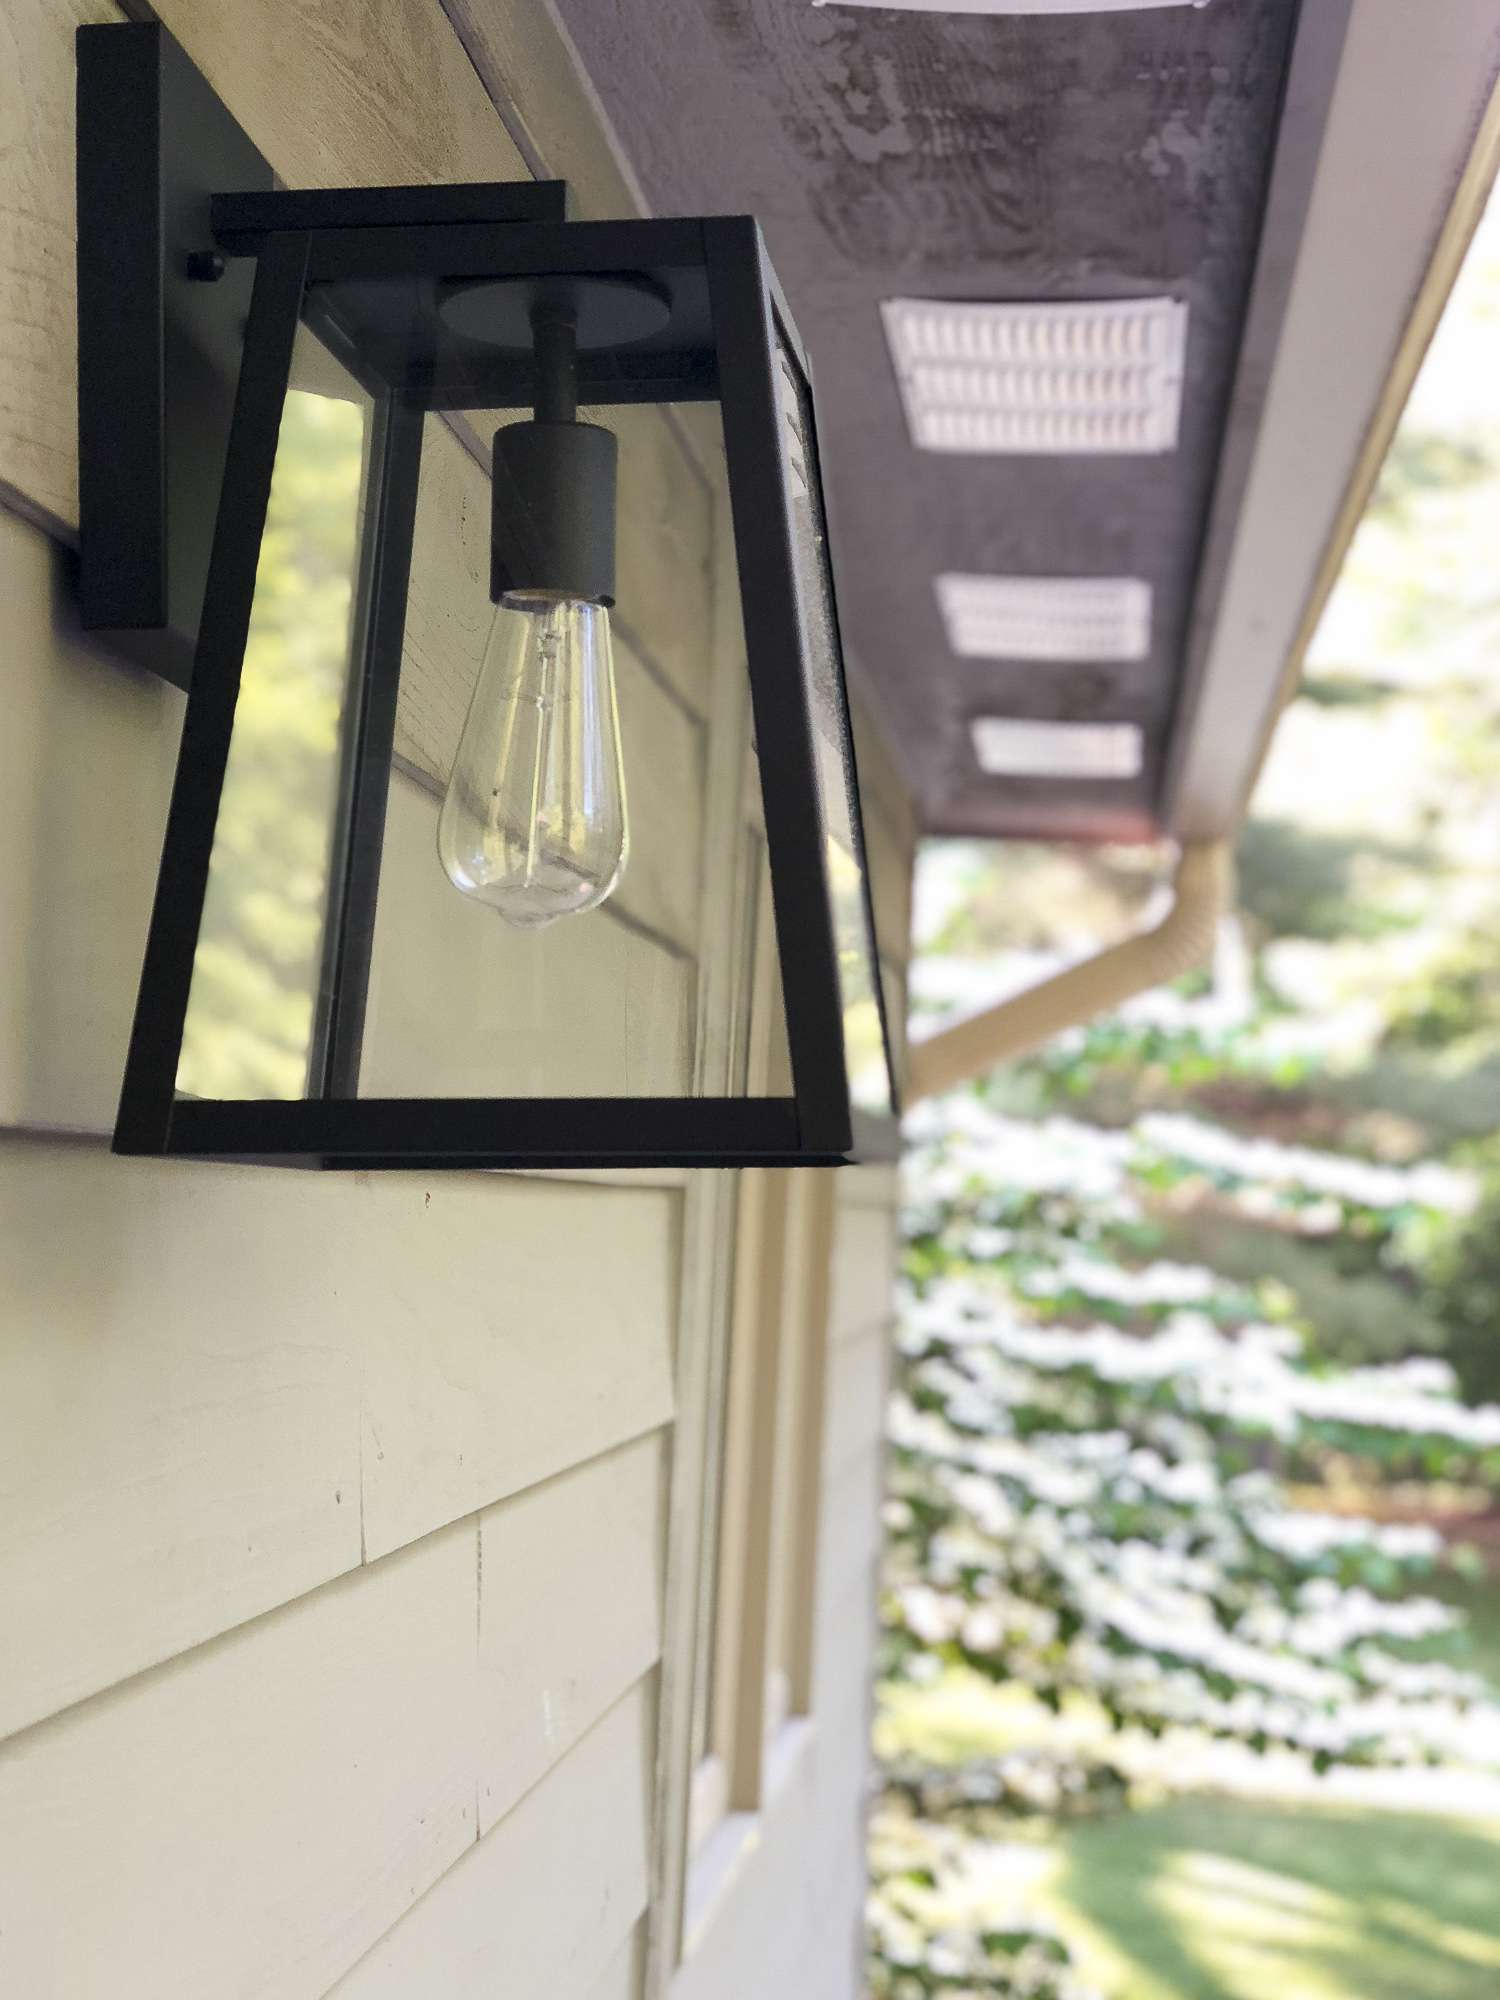 Are you looking for an easy and affordable way to update your home exterior? I modernized our 1990s ranch in one afternoon with affordable modern farmhouse outdoor lighting! Read more to see the transformation!